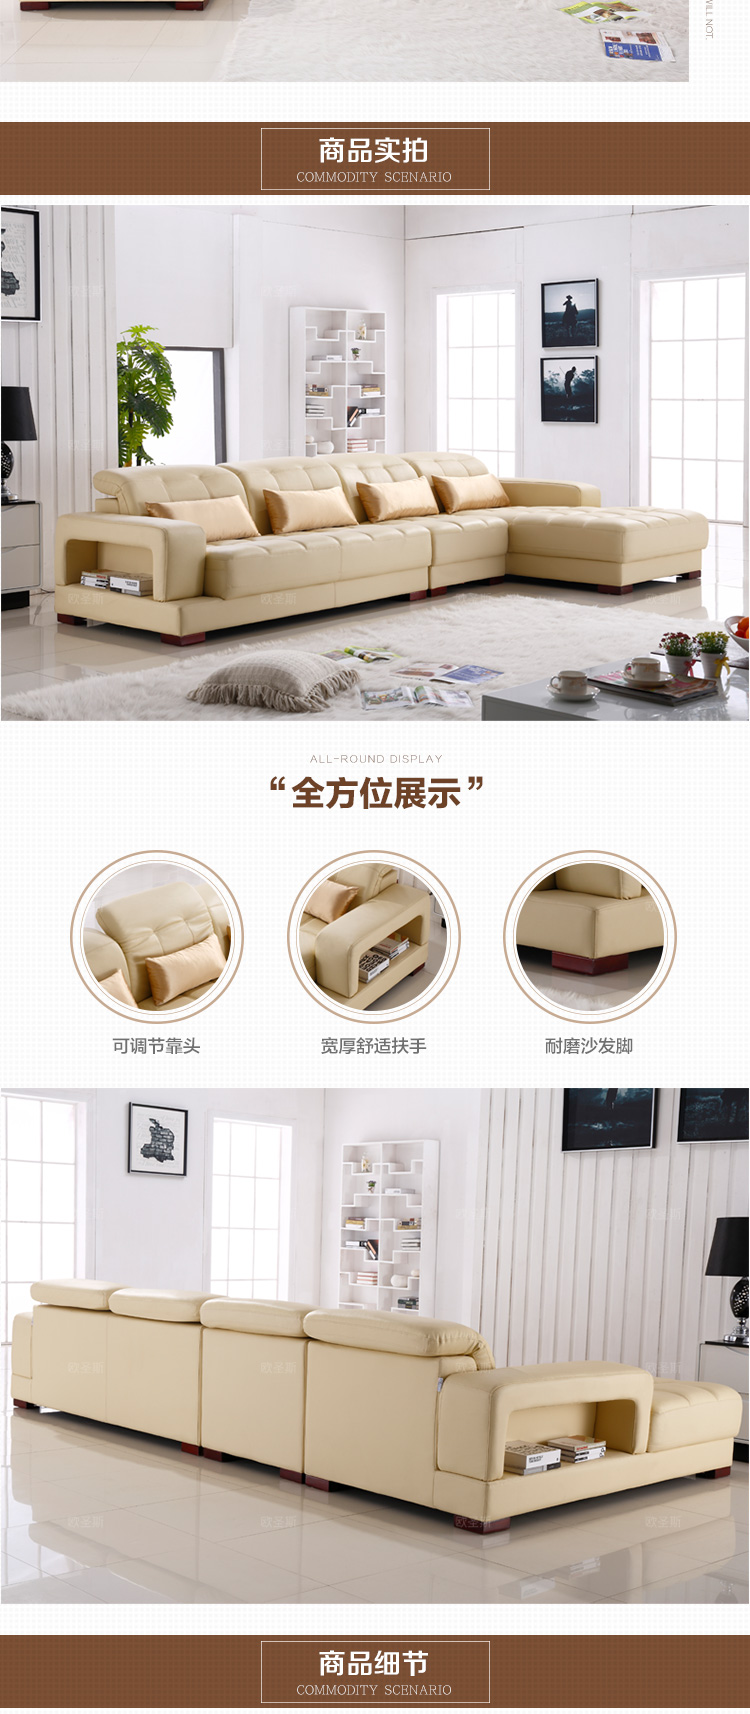 Fabulous 2019 Softline Leather Sofa Italian Nubuck Leather Sofa Furniture Leather Modern Simple Design Sectional Leather Sofa 1305Q Ocoug Best Dining Table And Chair Ideas Images Ocougorg